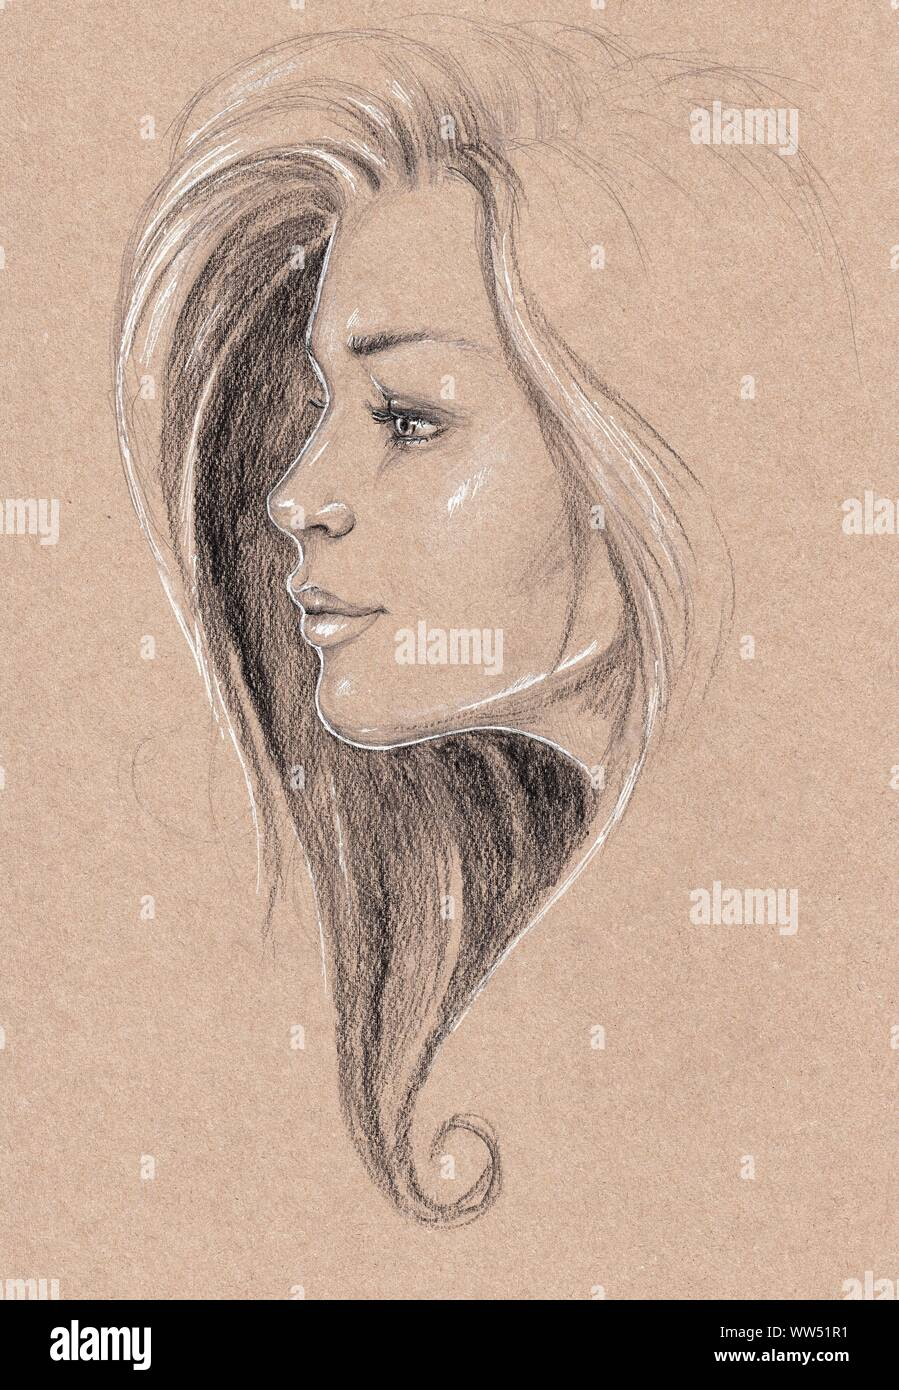 Pretty Girl Drawing High Resolution Stock Photography And Images Alamy